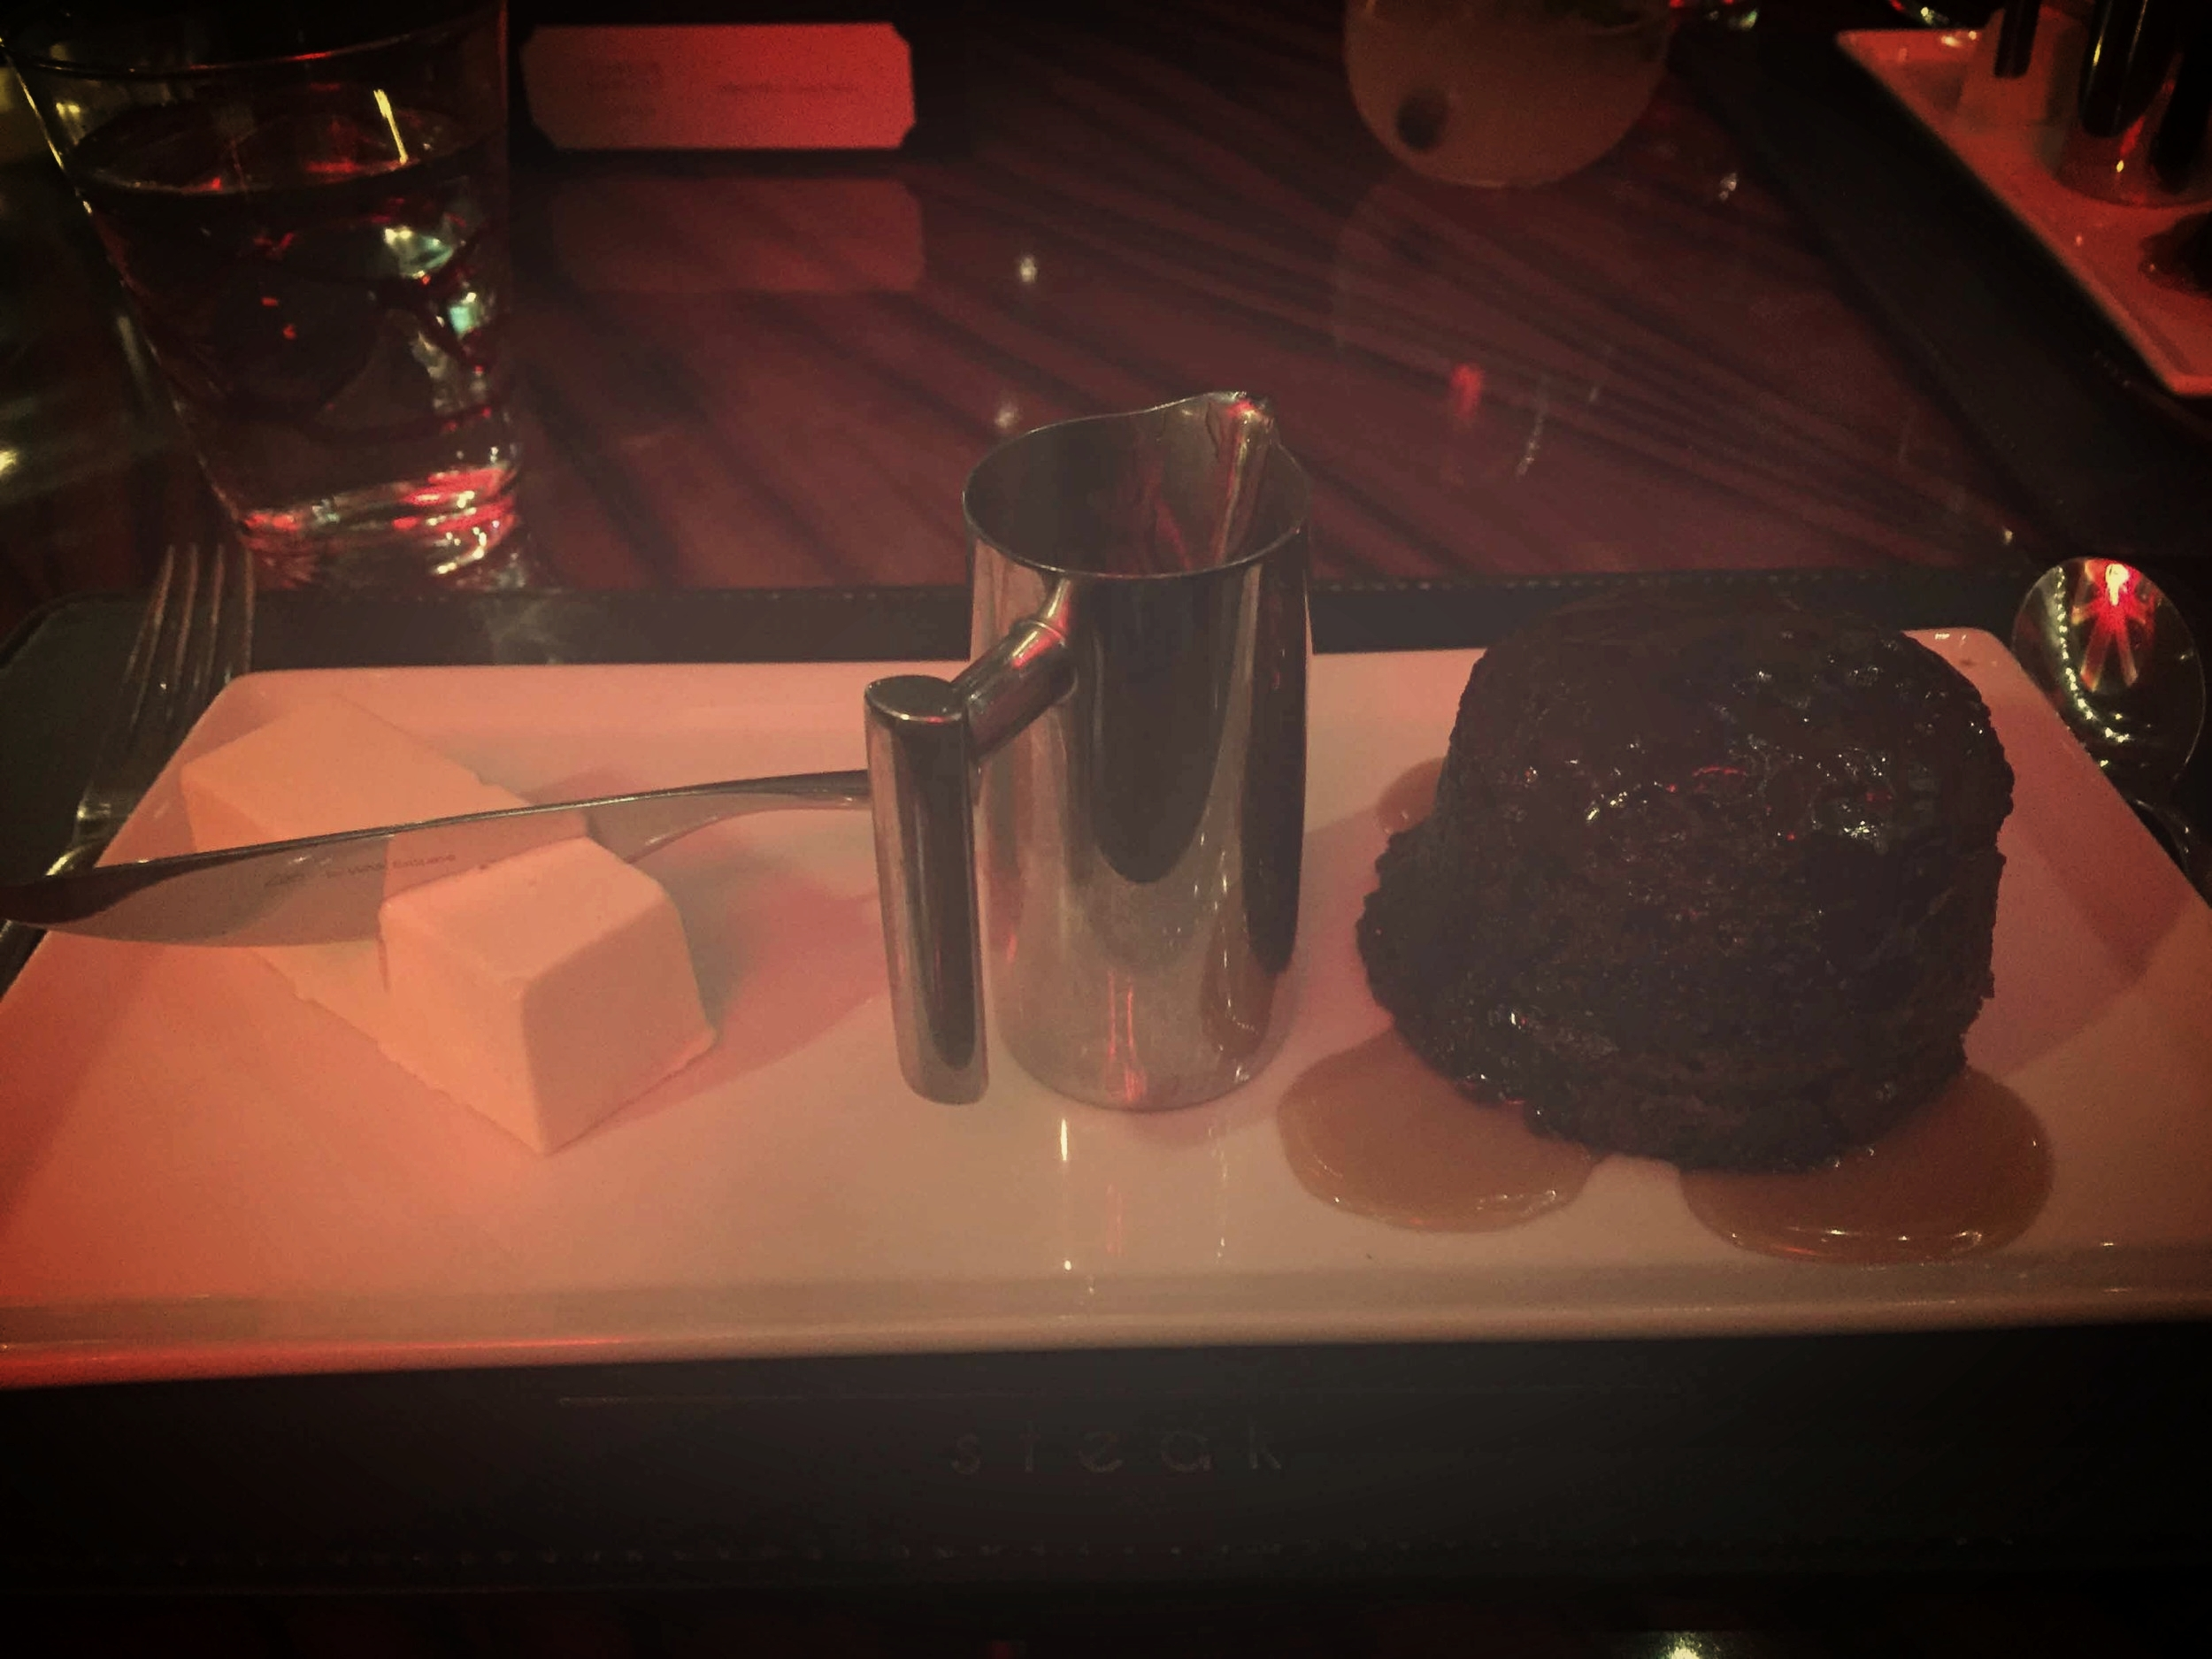 Gordon Ramsey's STEAK at Paris: Sticky Toffee Pudding (note the ice cream served to look like butter)